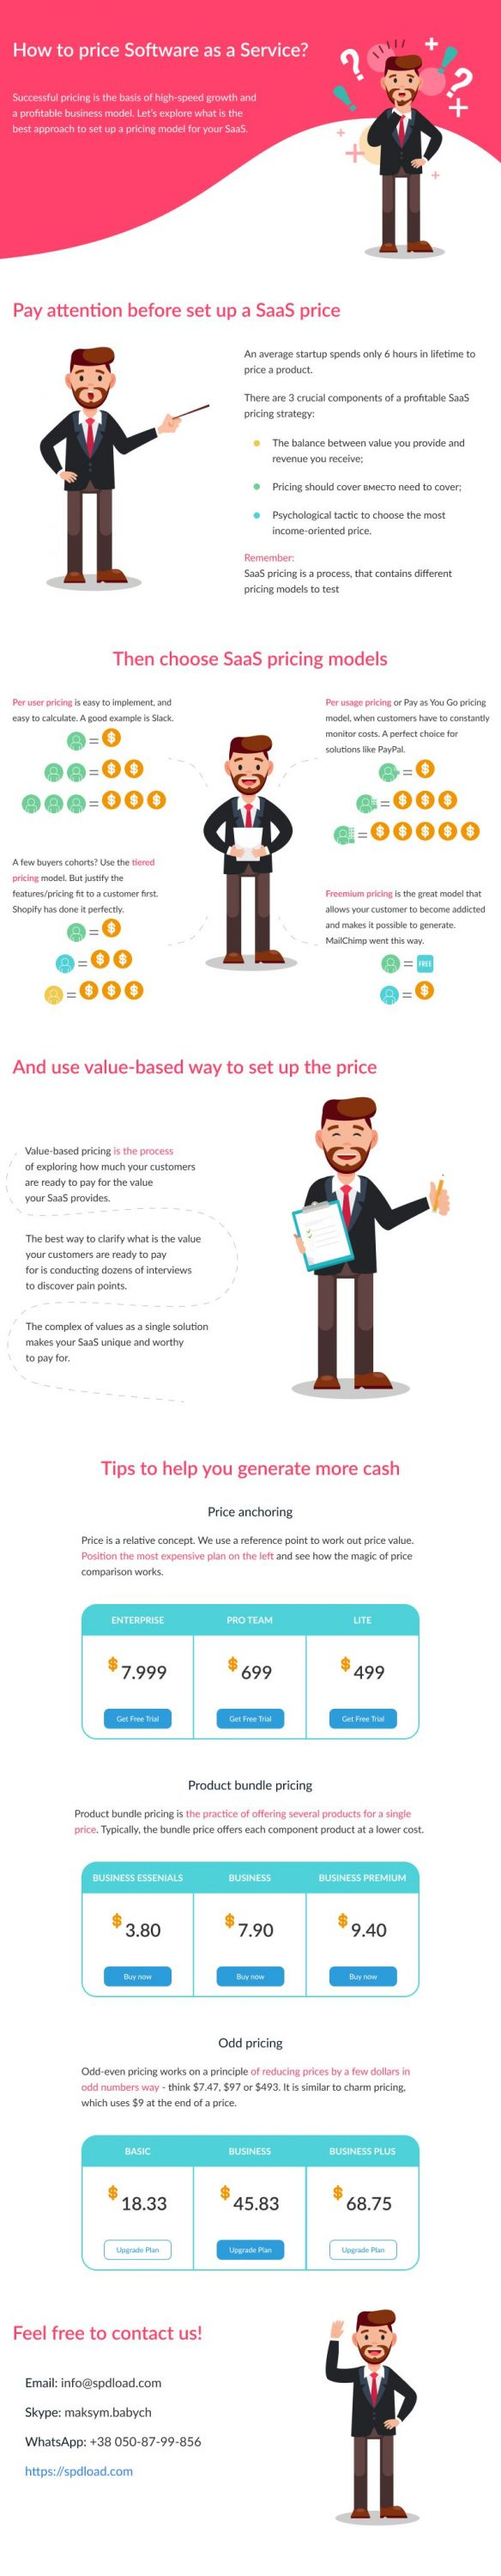 SaaS pricing models, strategies and psychological tips on how to sale cloud software in a profitable way